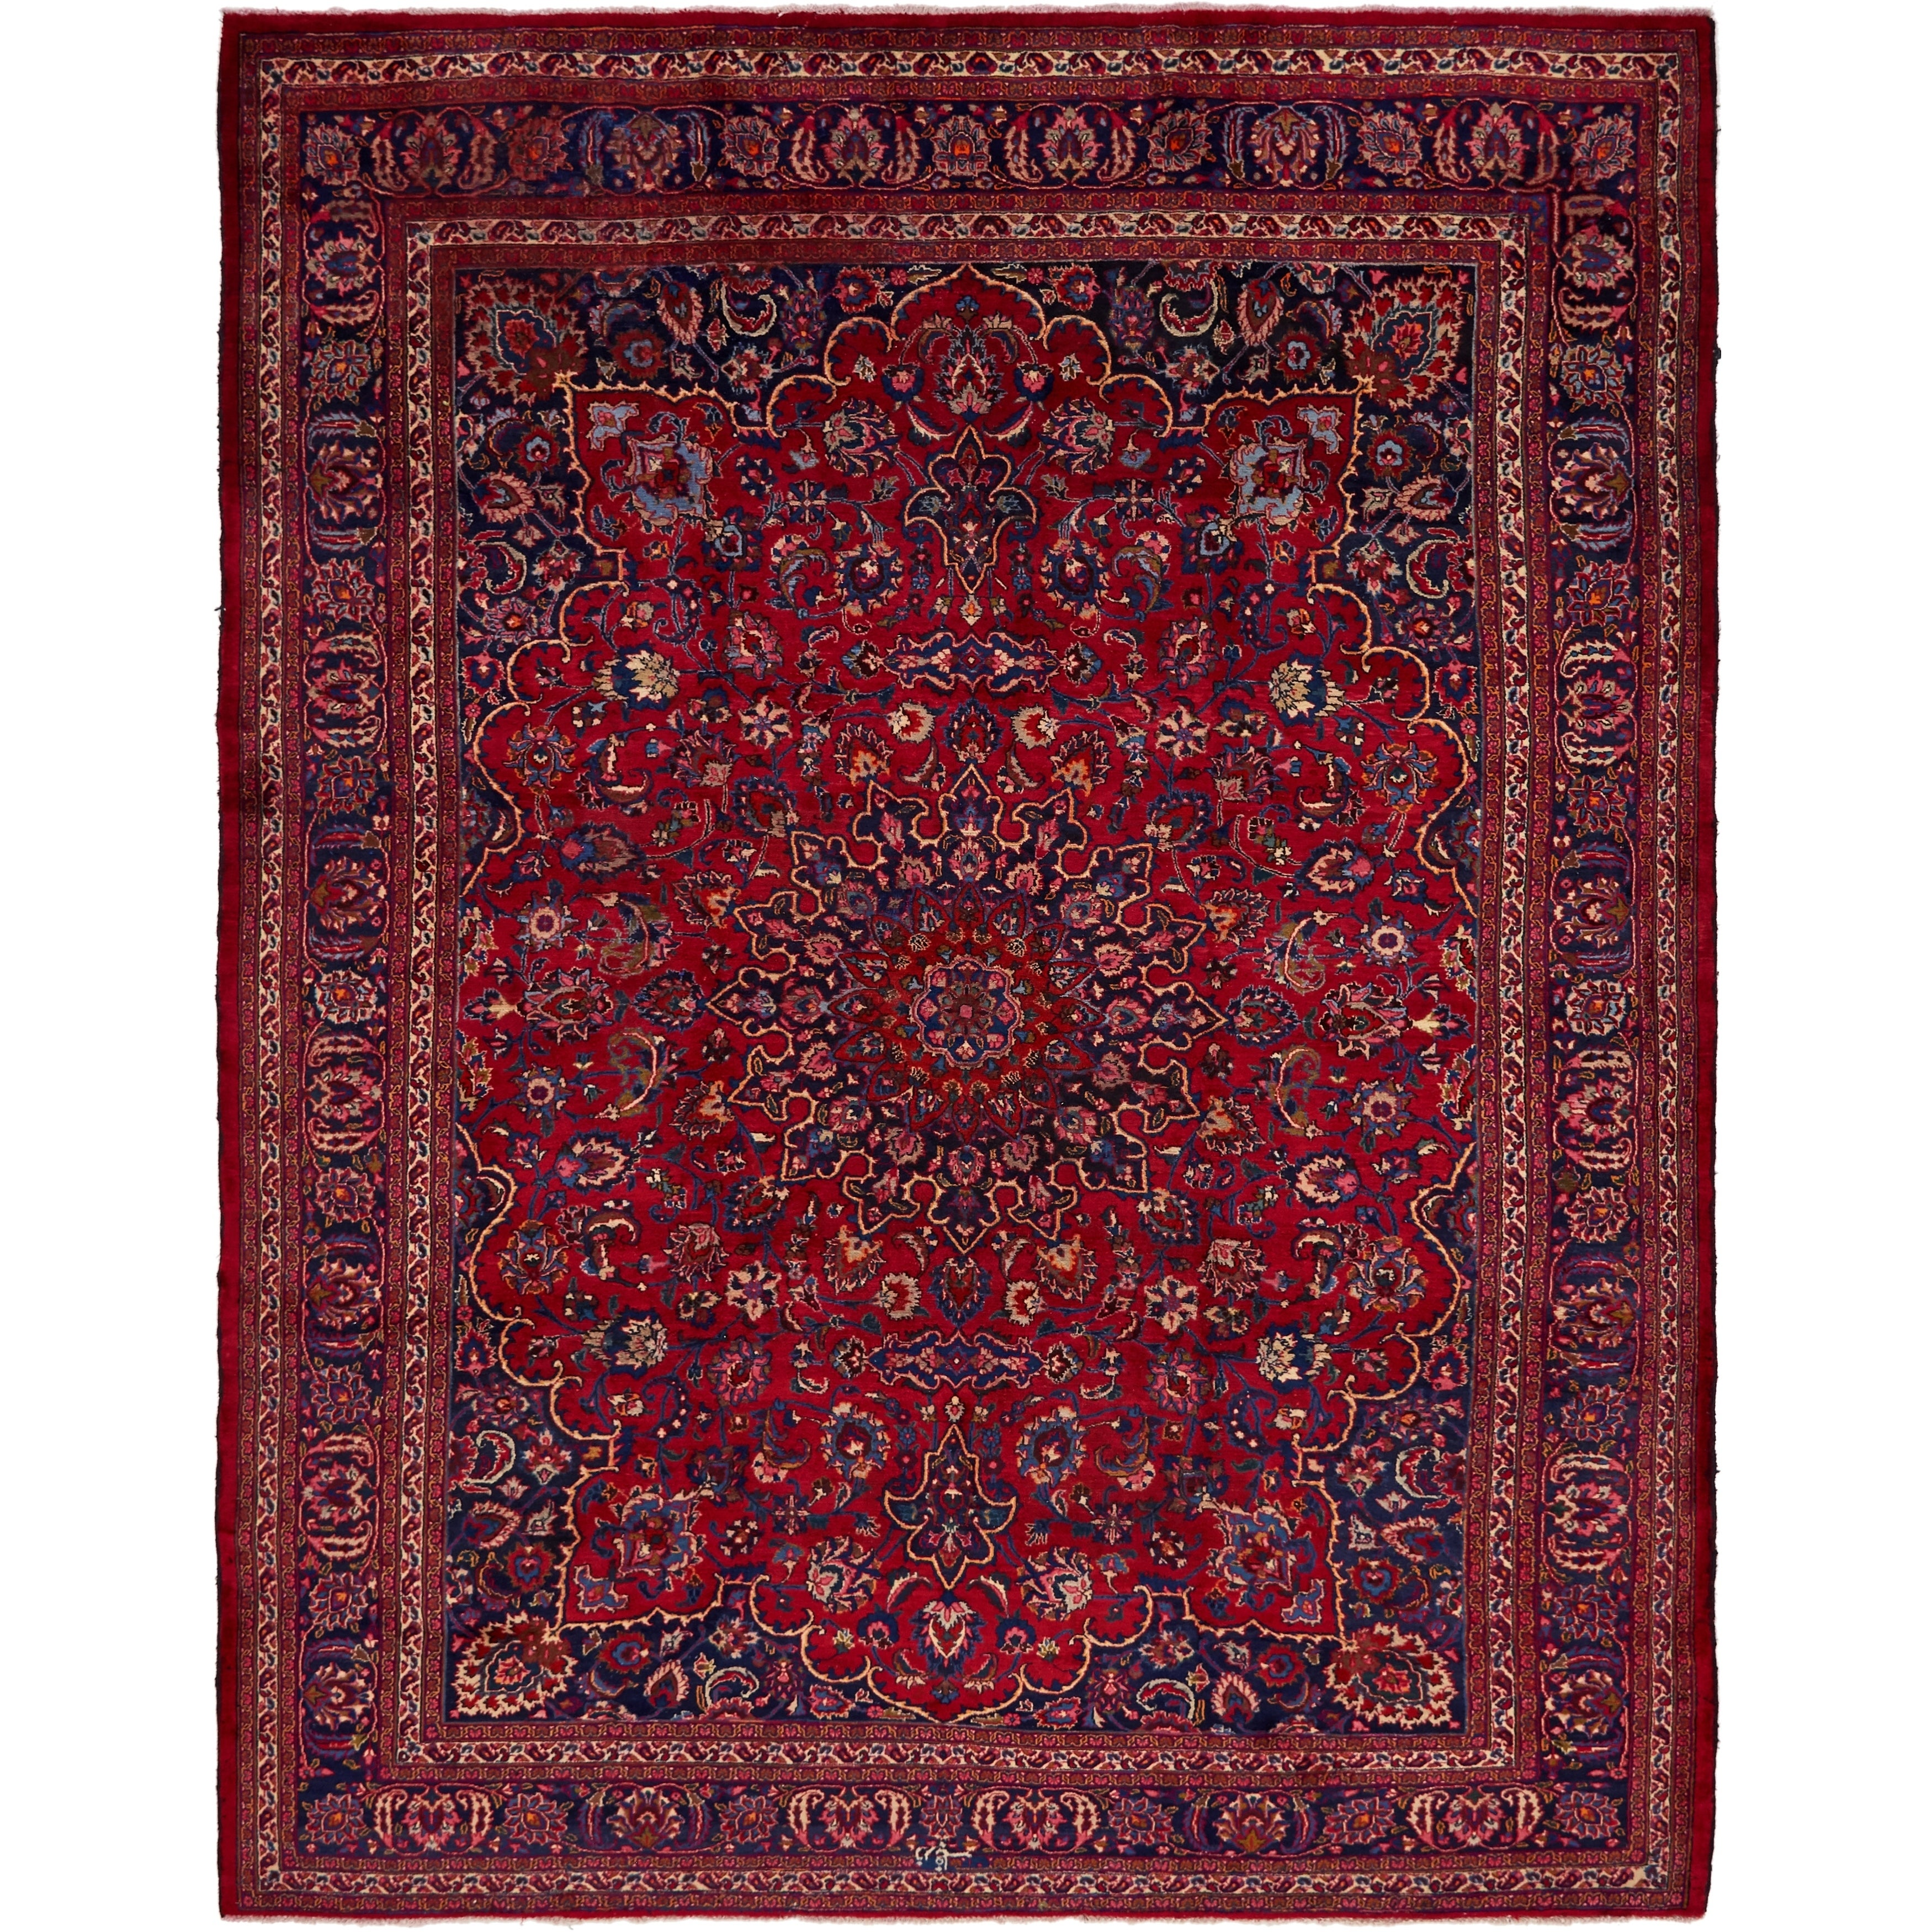 Hand Knotted Kashmar Semi Antique Wool Area Rug - 9 8 x 12 8 (Red - 9 8 x 12 8)